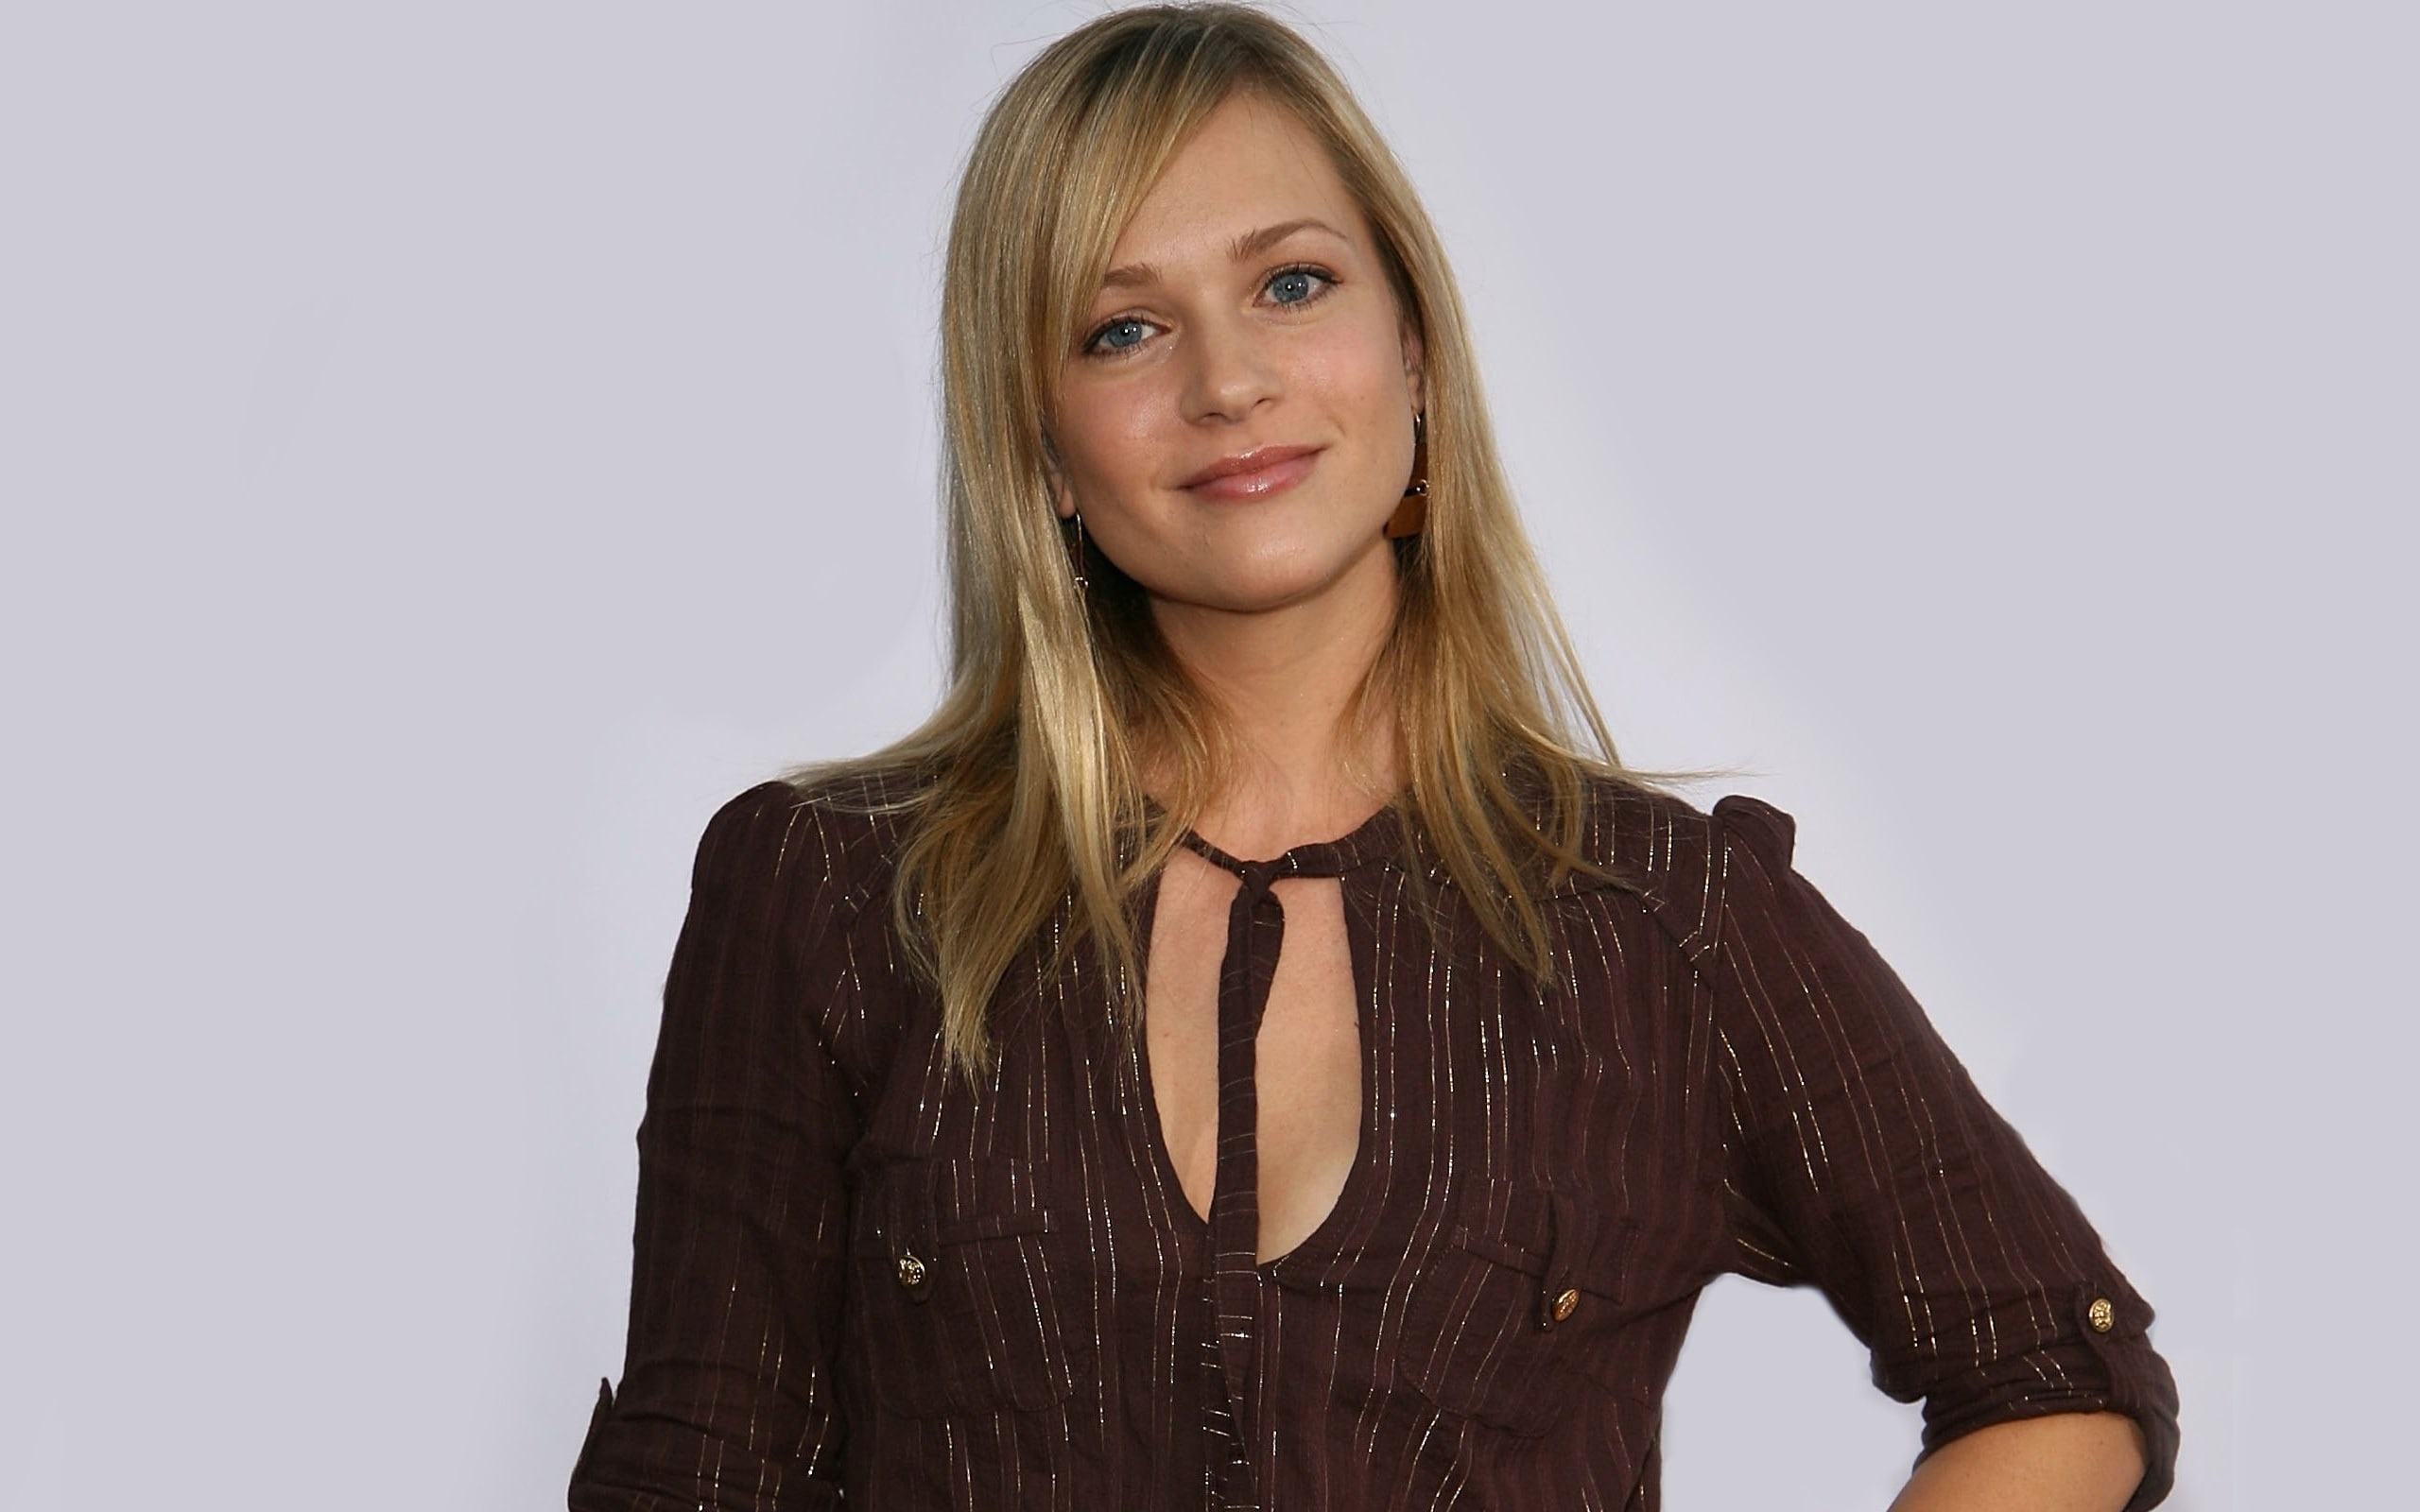 Andrea J Cook a.j. cook hd wallpapers | 7wallpapers